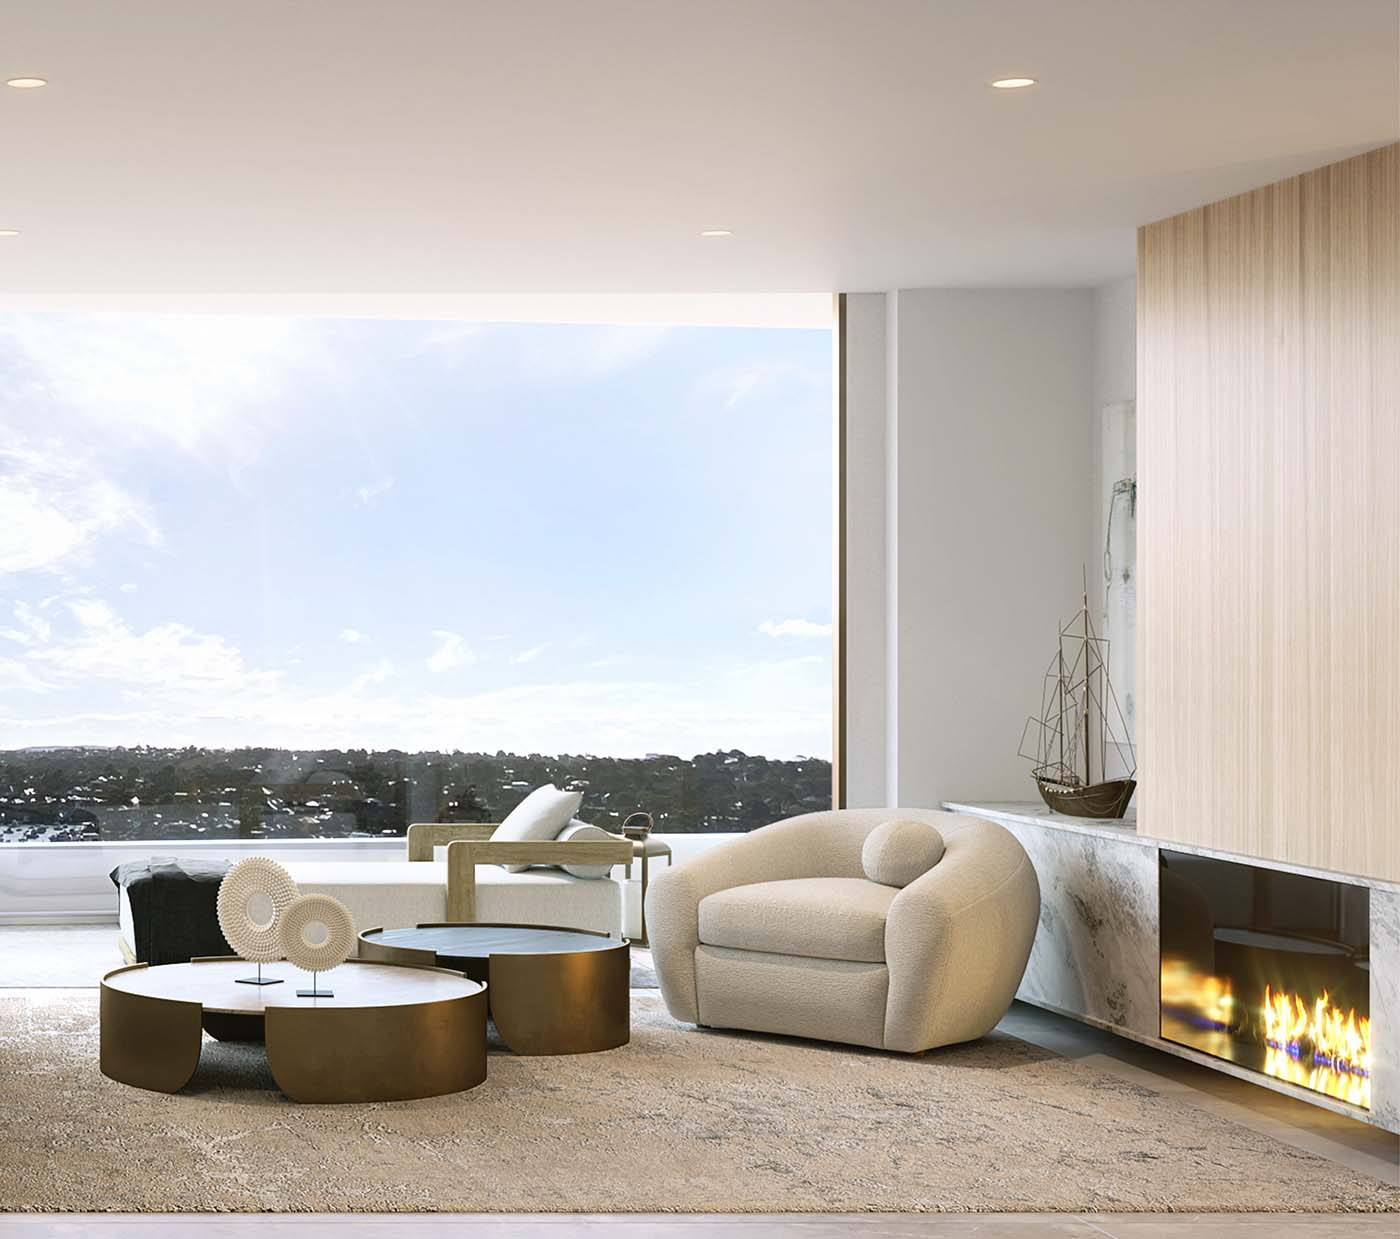 living room with glass window and view